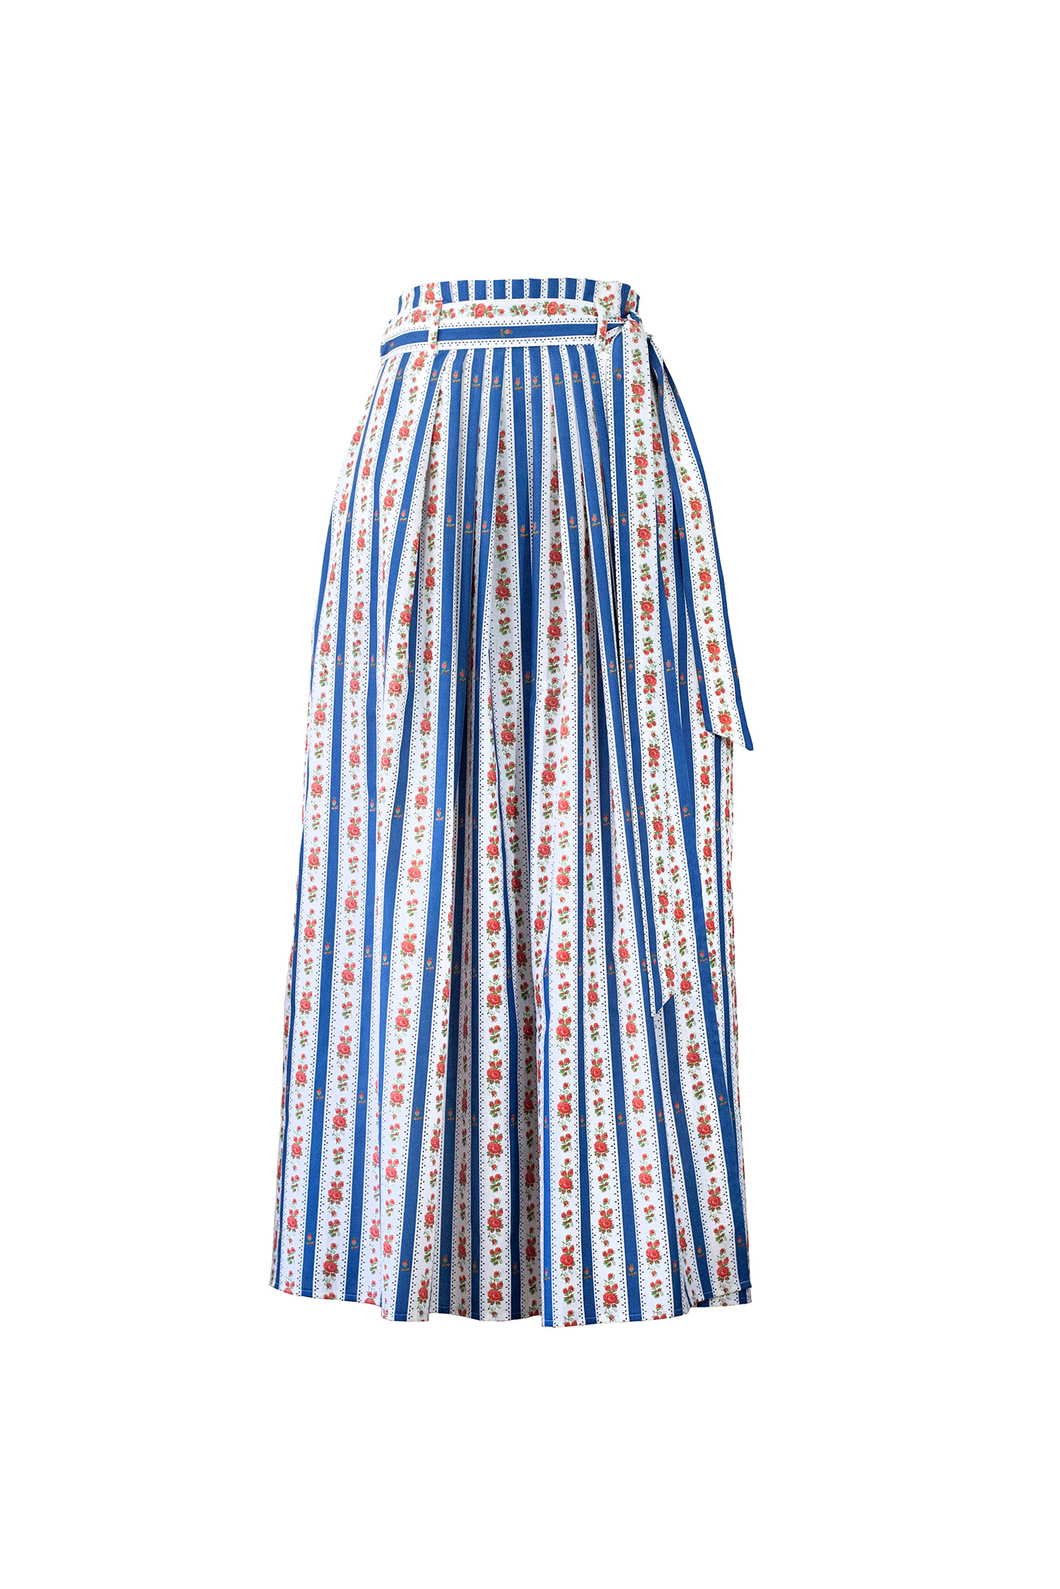 """SANDALS ONLY"" WRAP SKIRT - BLUE CRETONE - Lemiché"